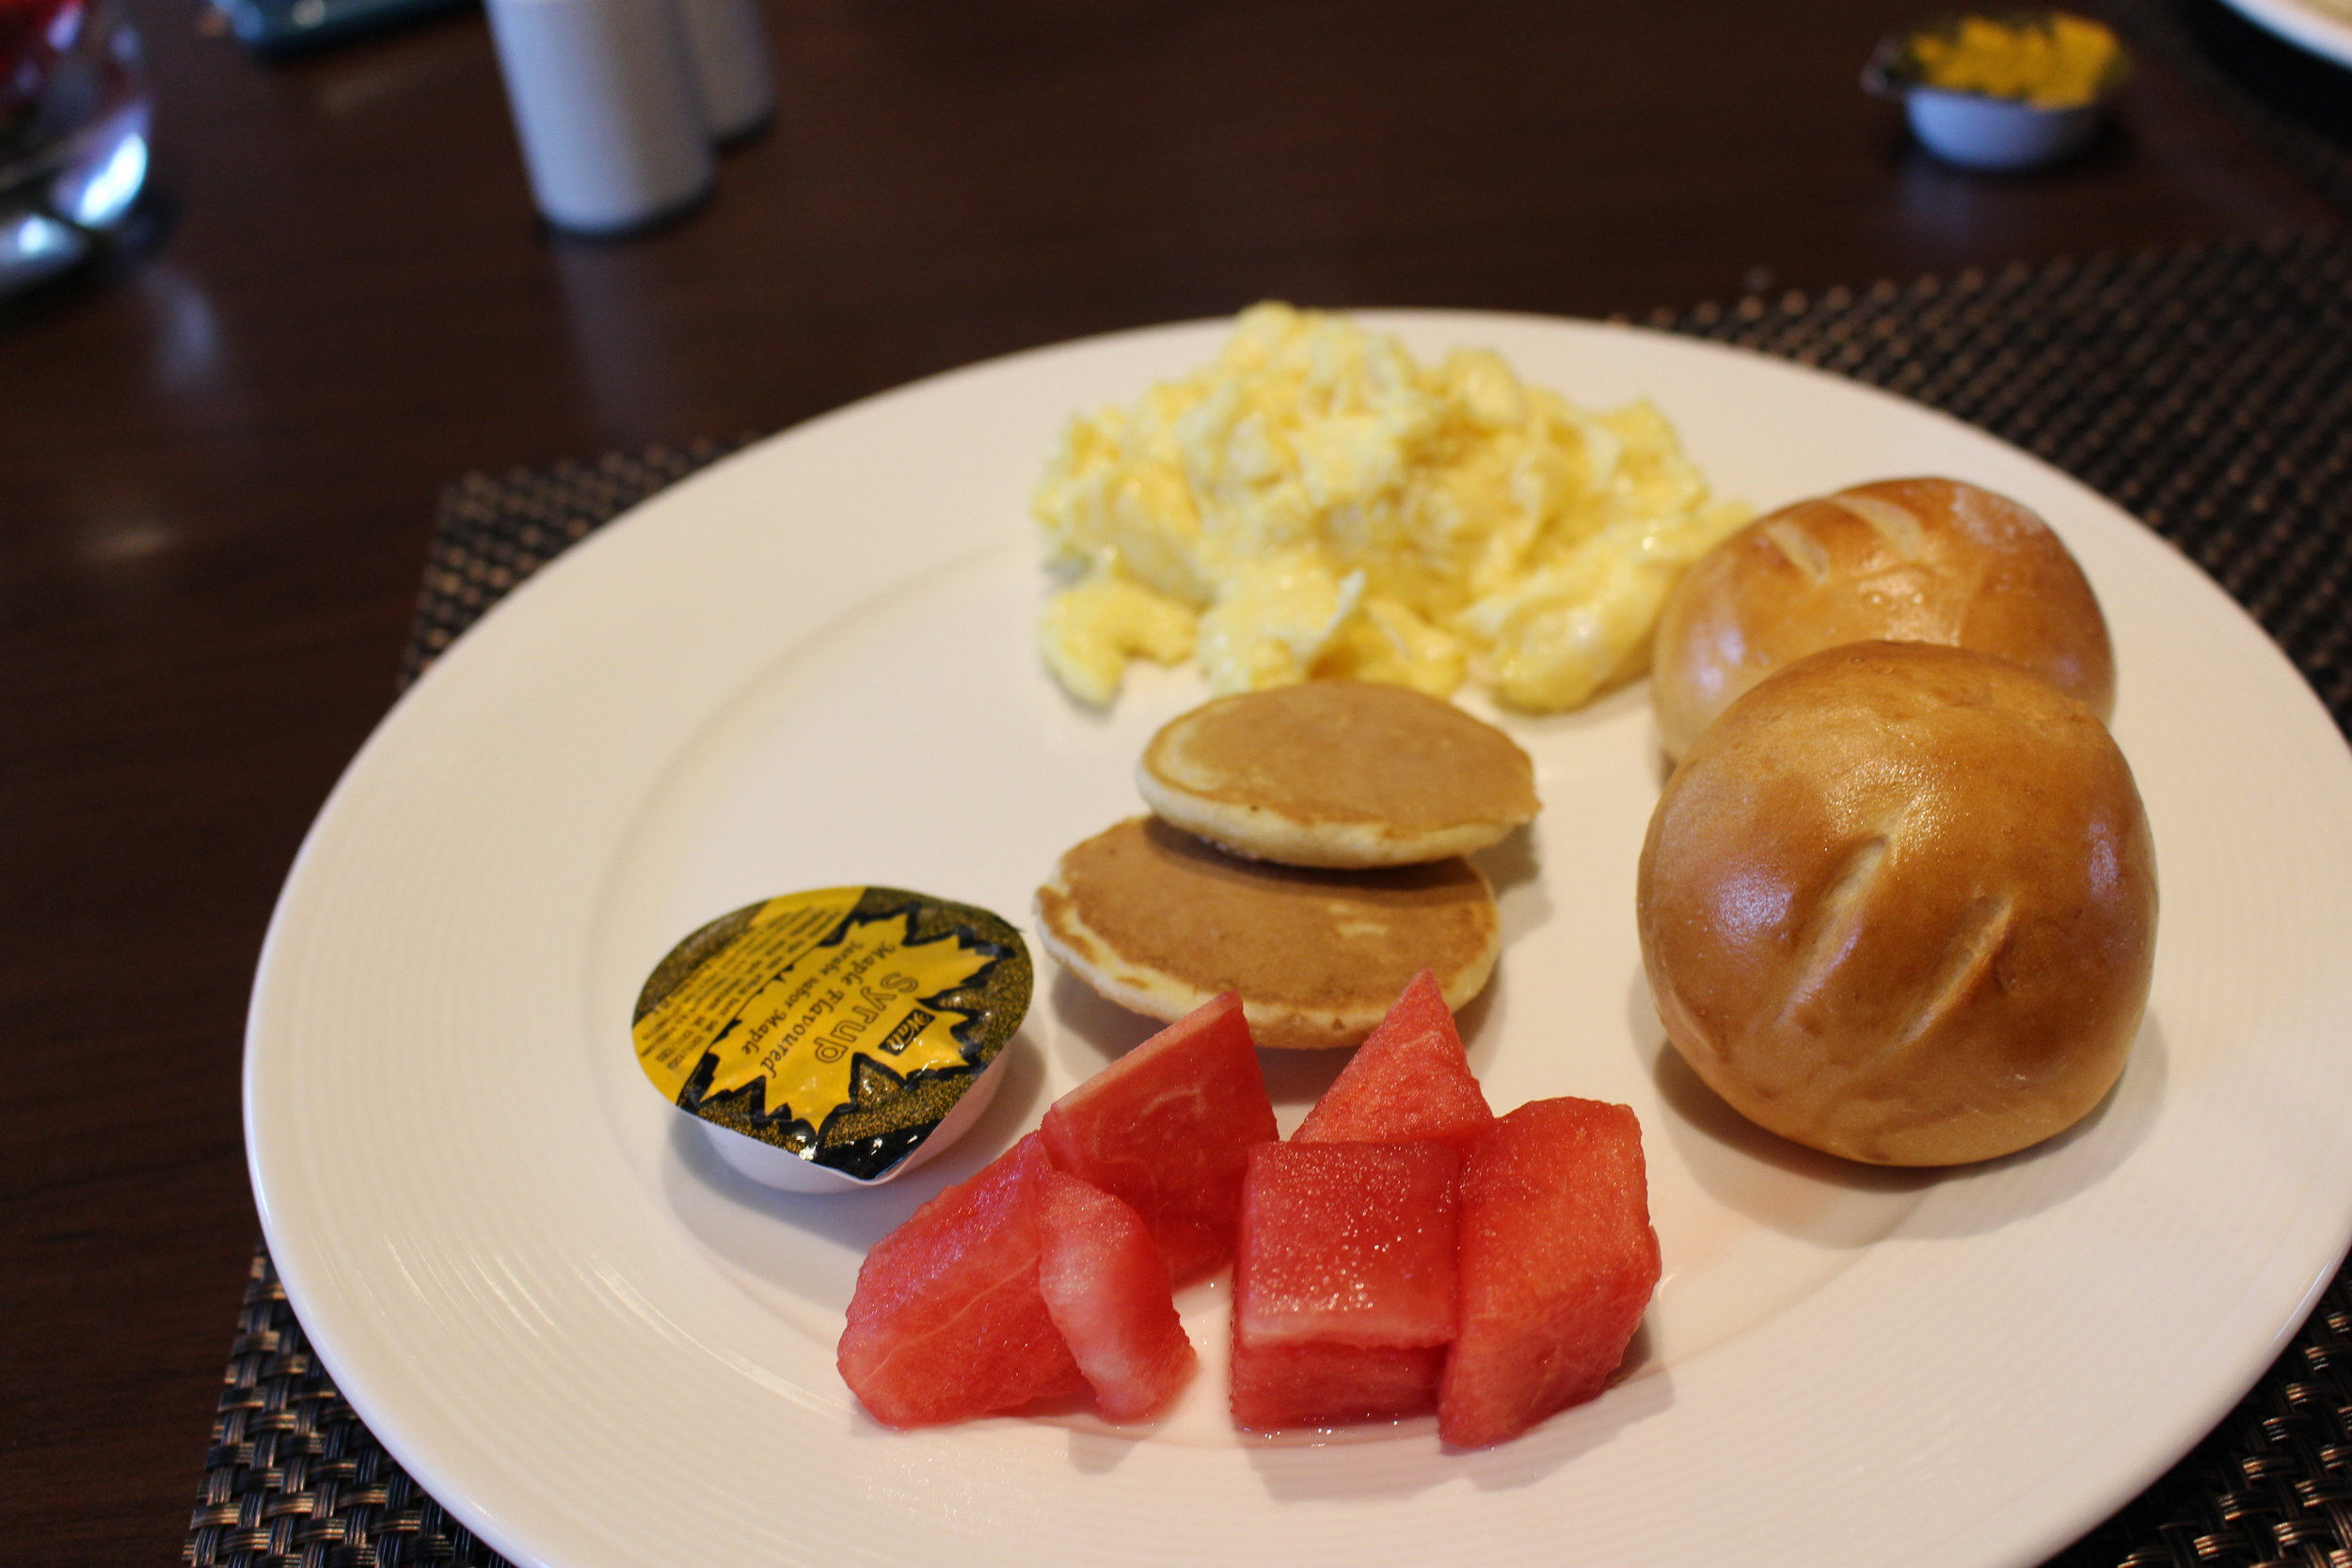 I had the breakfast of champions of mini pancakes, scrambled eggs, watermelon, and those yummy rolls from the night before.  Restaurant: Costa del Sol Wyndham Restaurant